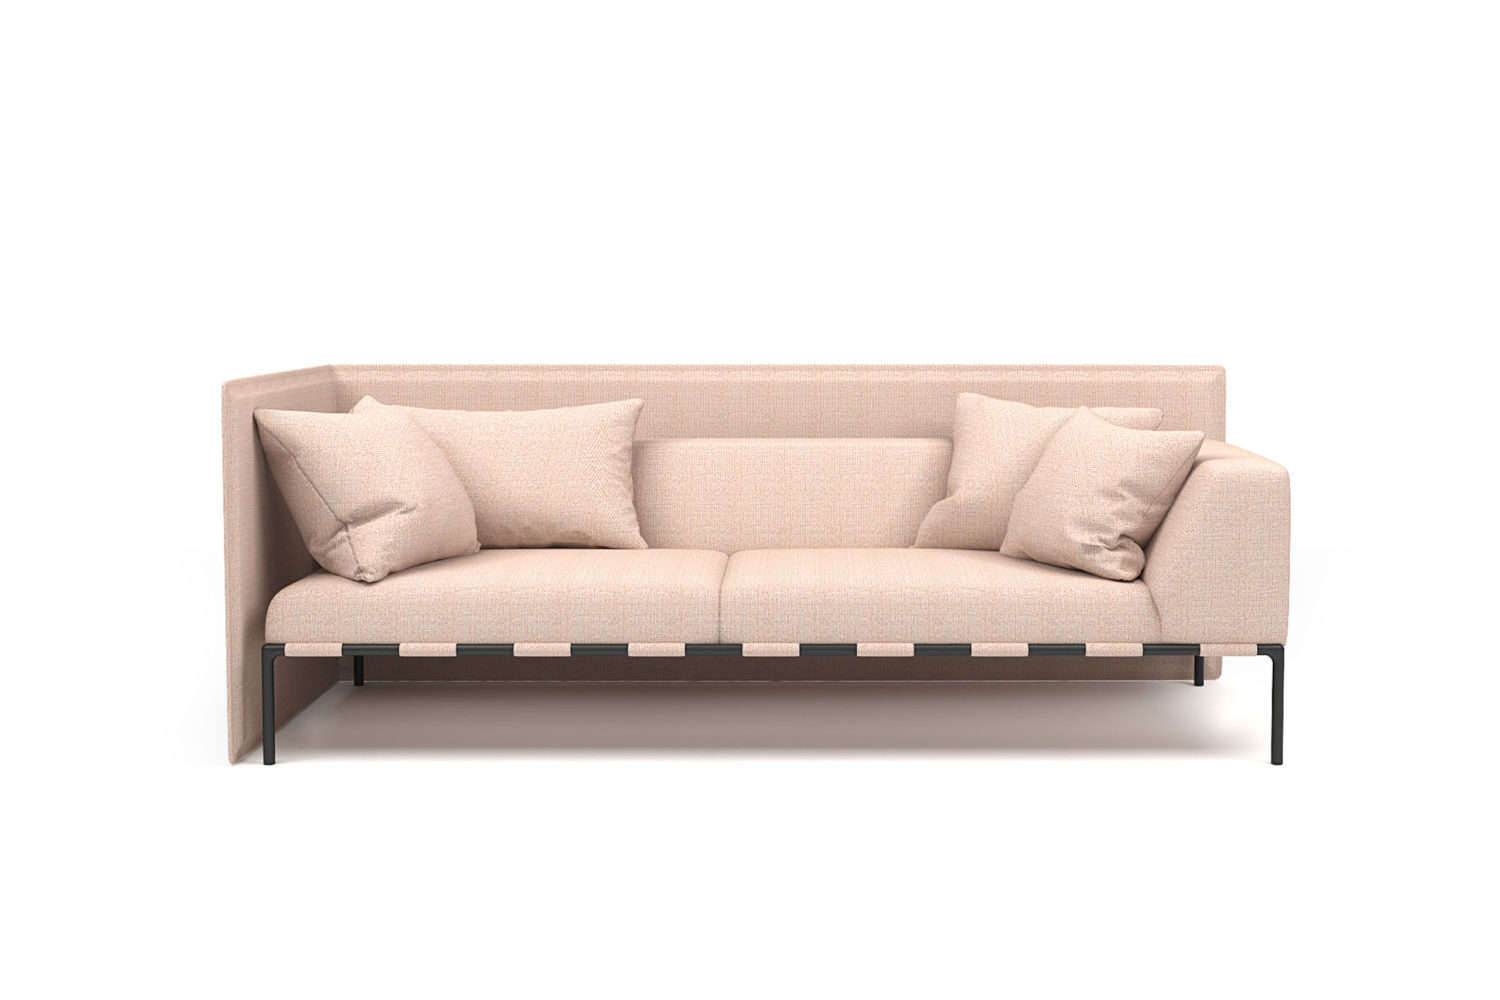 South Sofa By Christophe Pillet 2